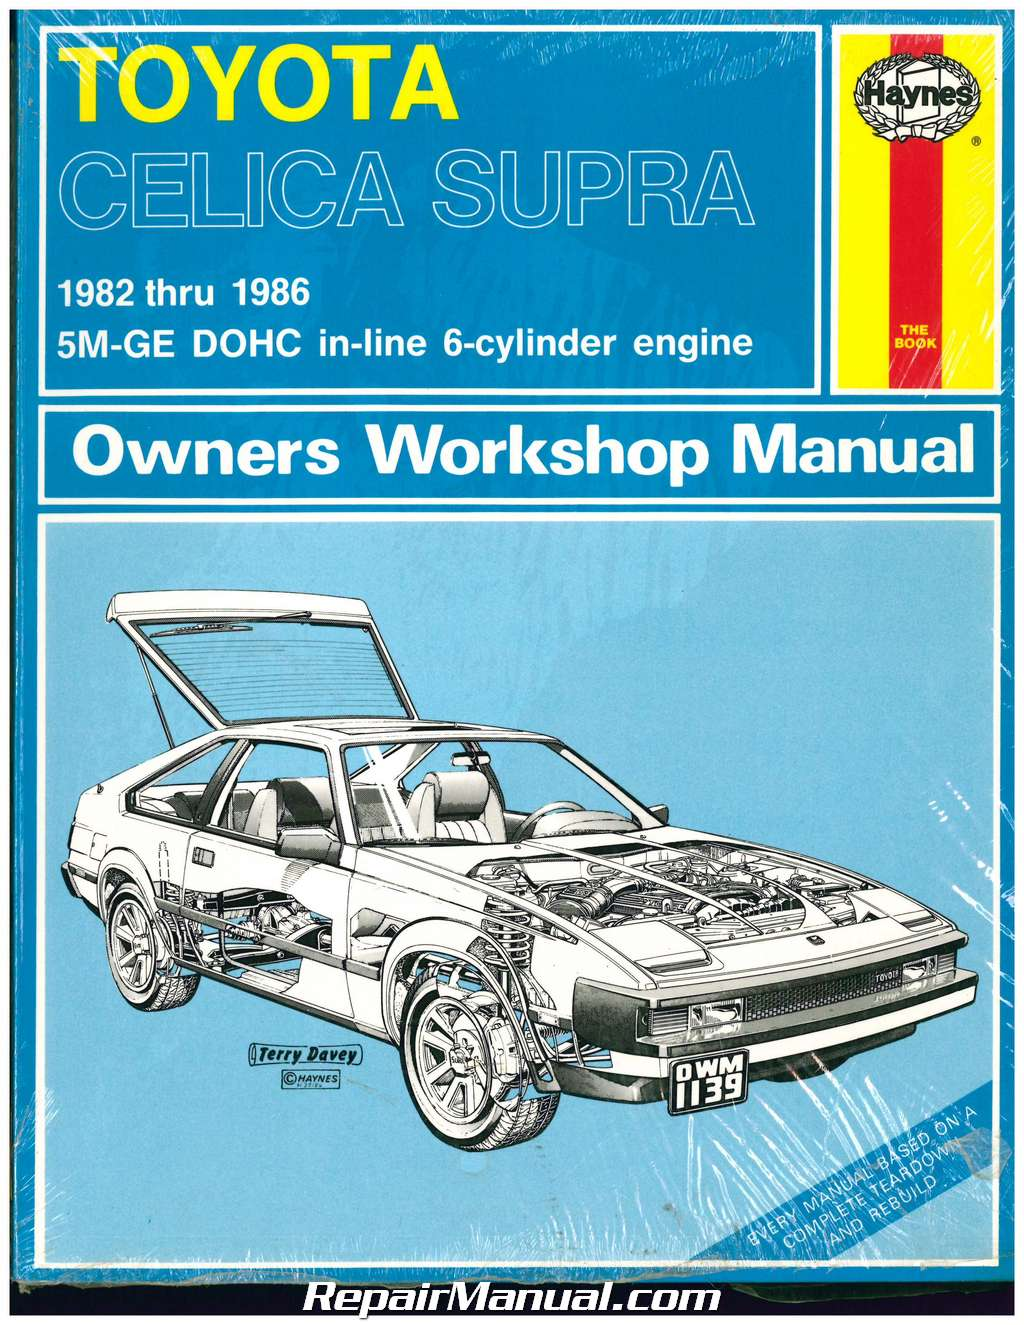 1994 Toyota Celica Owners Manual